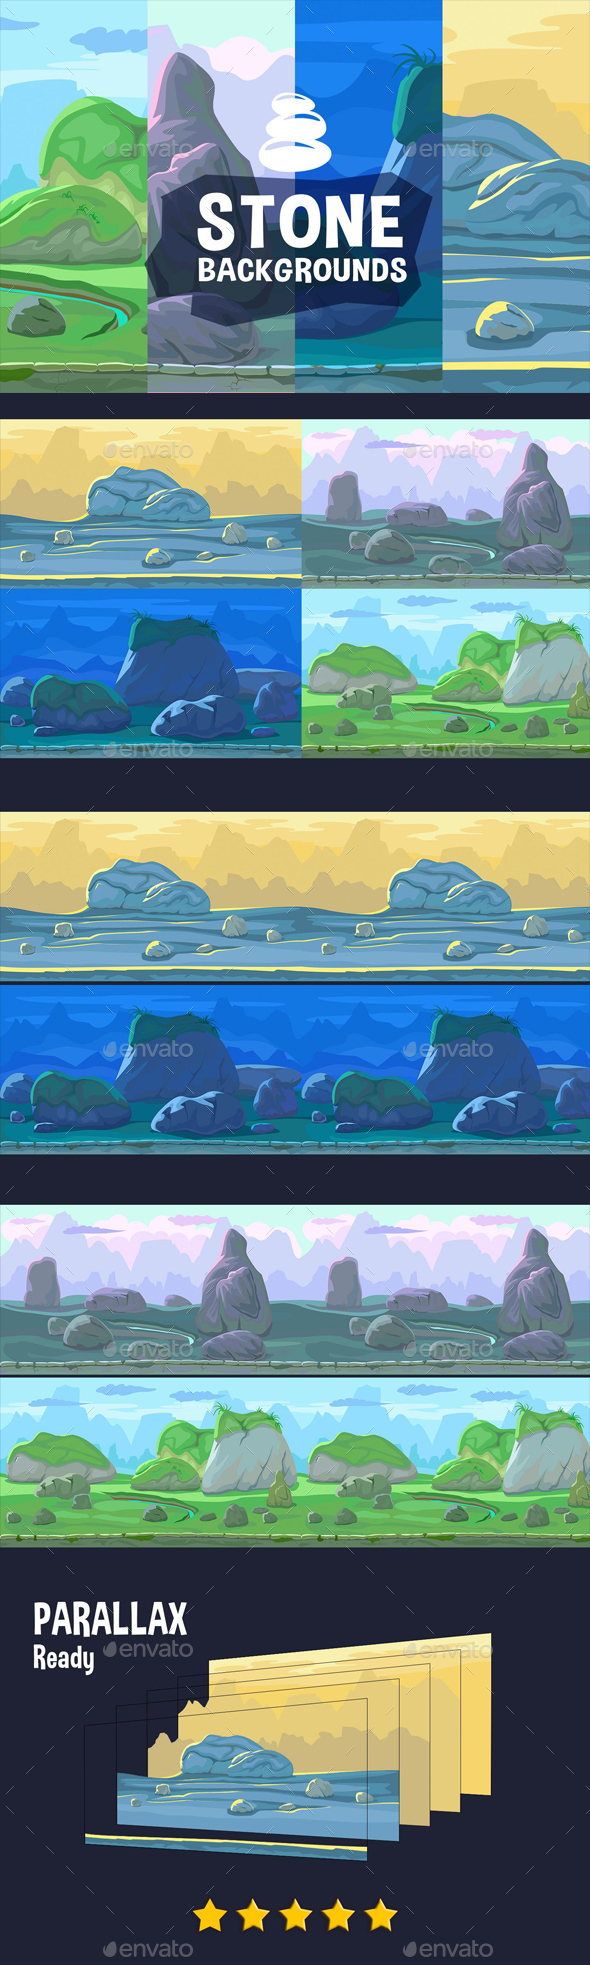 Parallax Stone Backgrounds - Backgrounds Game Assets